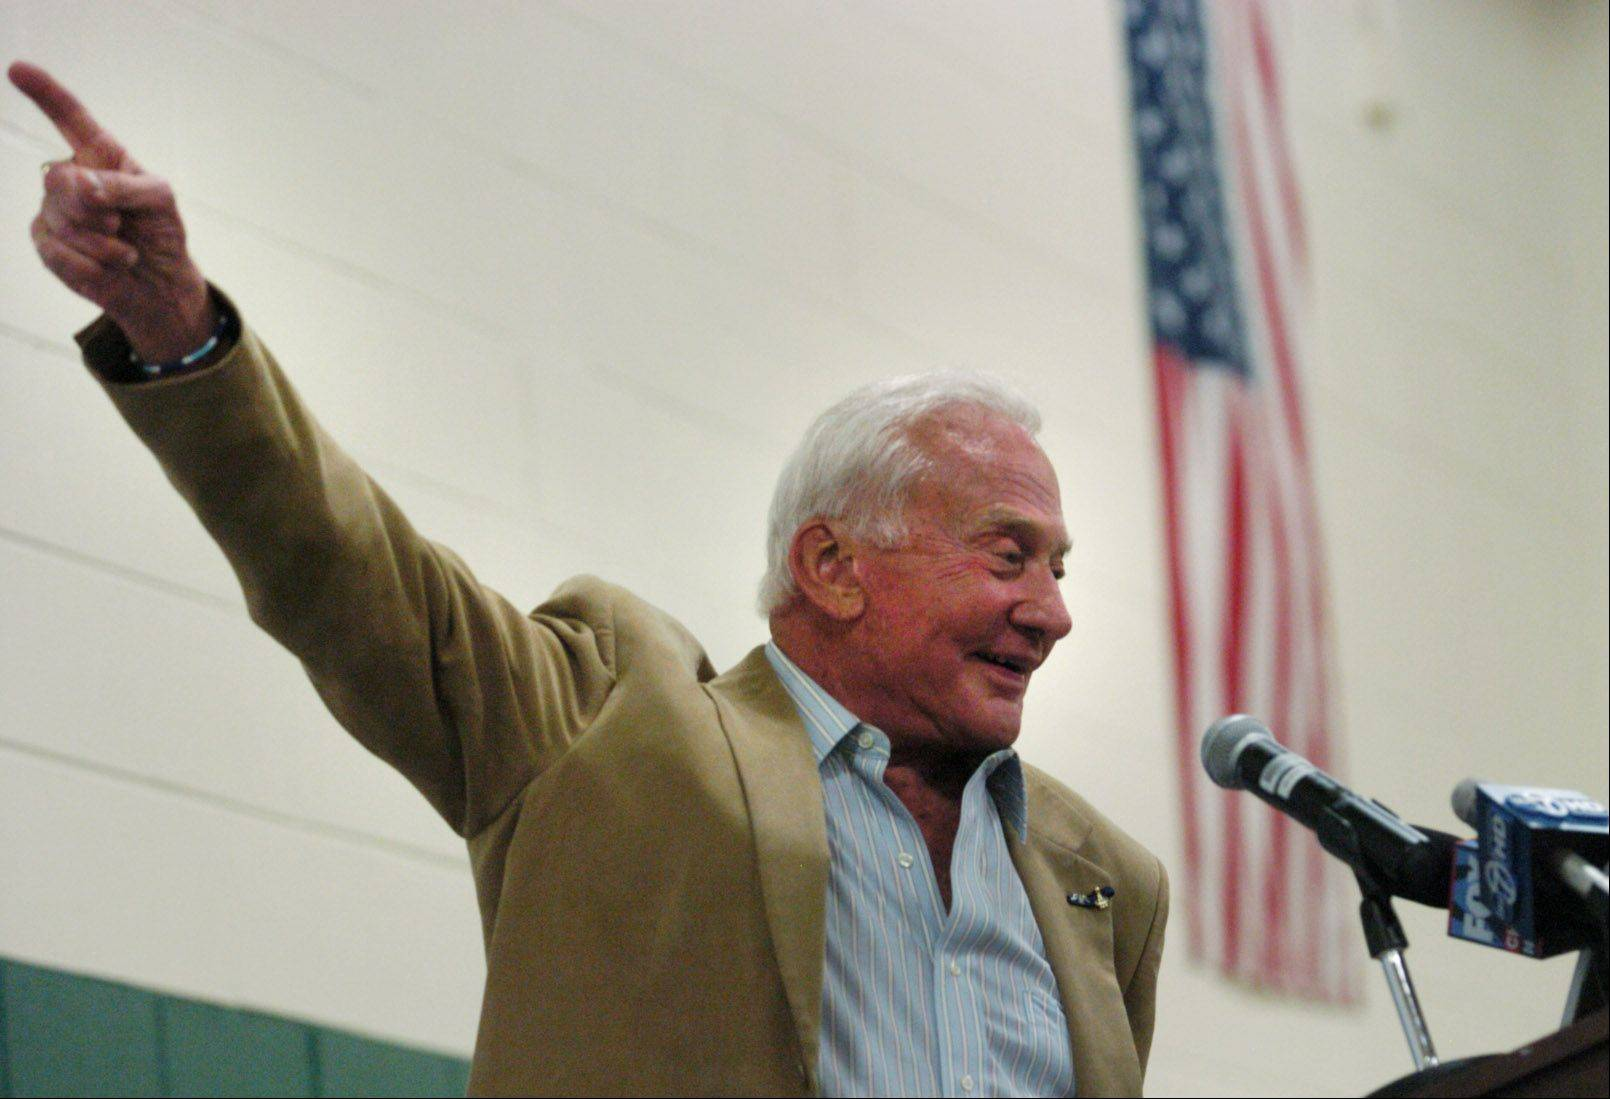 Astronaut Buzz Aldrin speaks to an assembly in his honor Monday at the Aldrin Elementary School in Schaumburg.